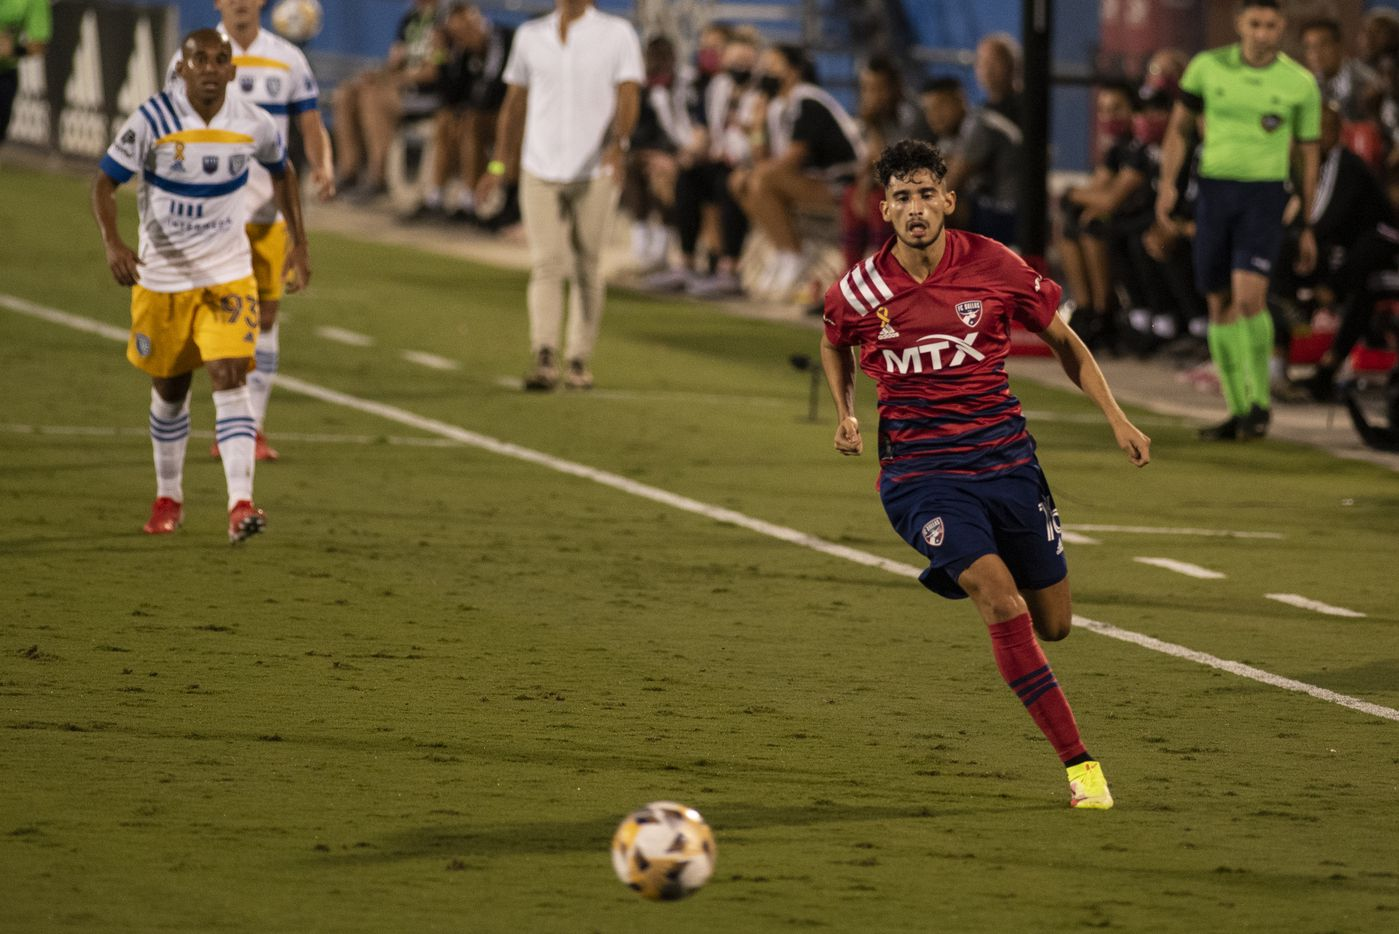 FC Dallas forward Ricardo Pepi (16) races down the field with the ball during FC DallasÕ home game against the San Jose Earthquakes at Toyota Stadium in Frisco, Texas on Saturday, September 11, 2021. (Emil Lippe/Special Contributor)